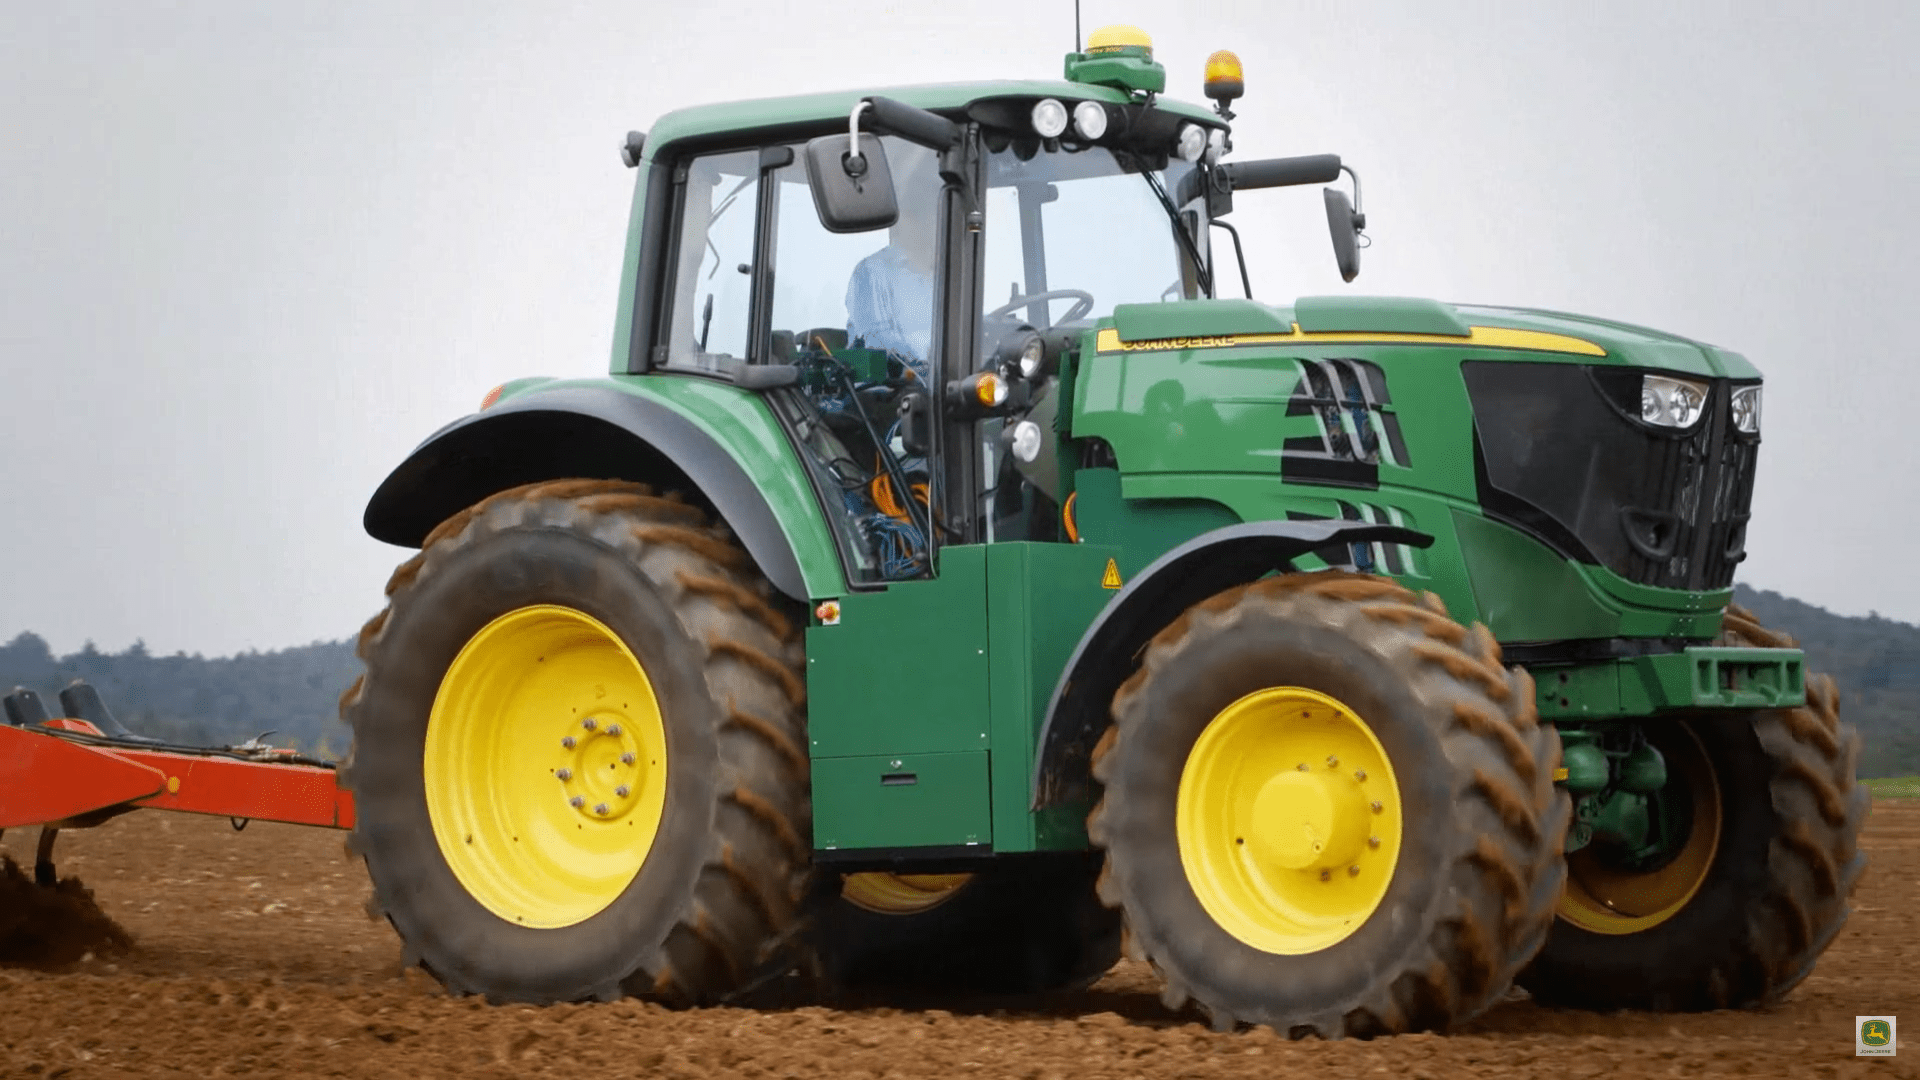 john deere unveils latest all electric tractor prototype for zero emission agriculture electrek. Black Bedroom Furniture Sets. Home Design Ideas